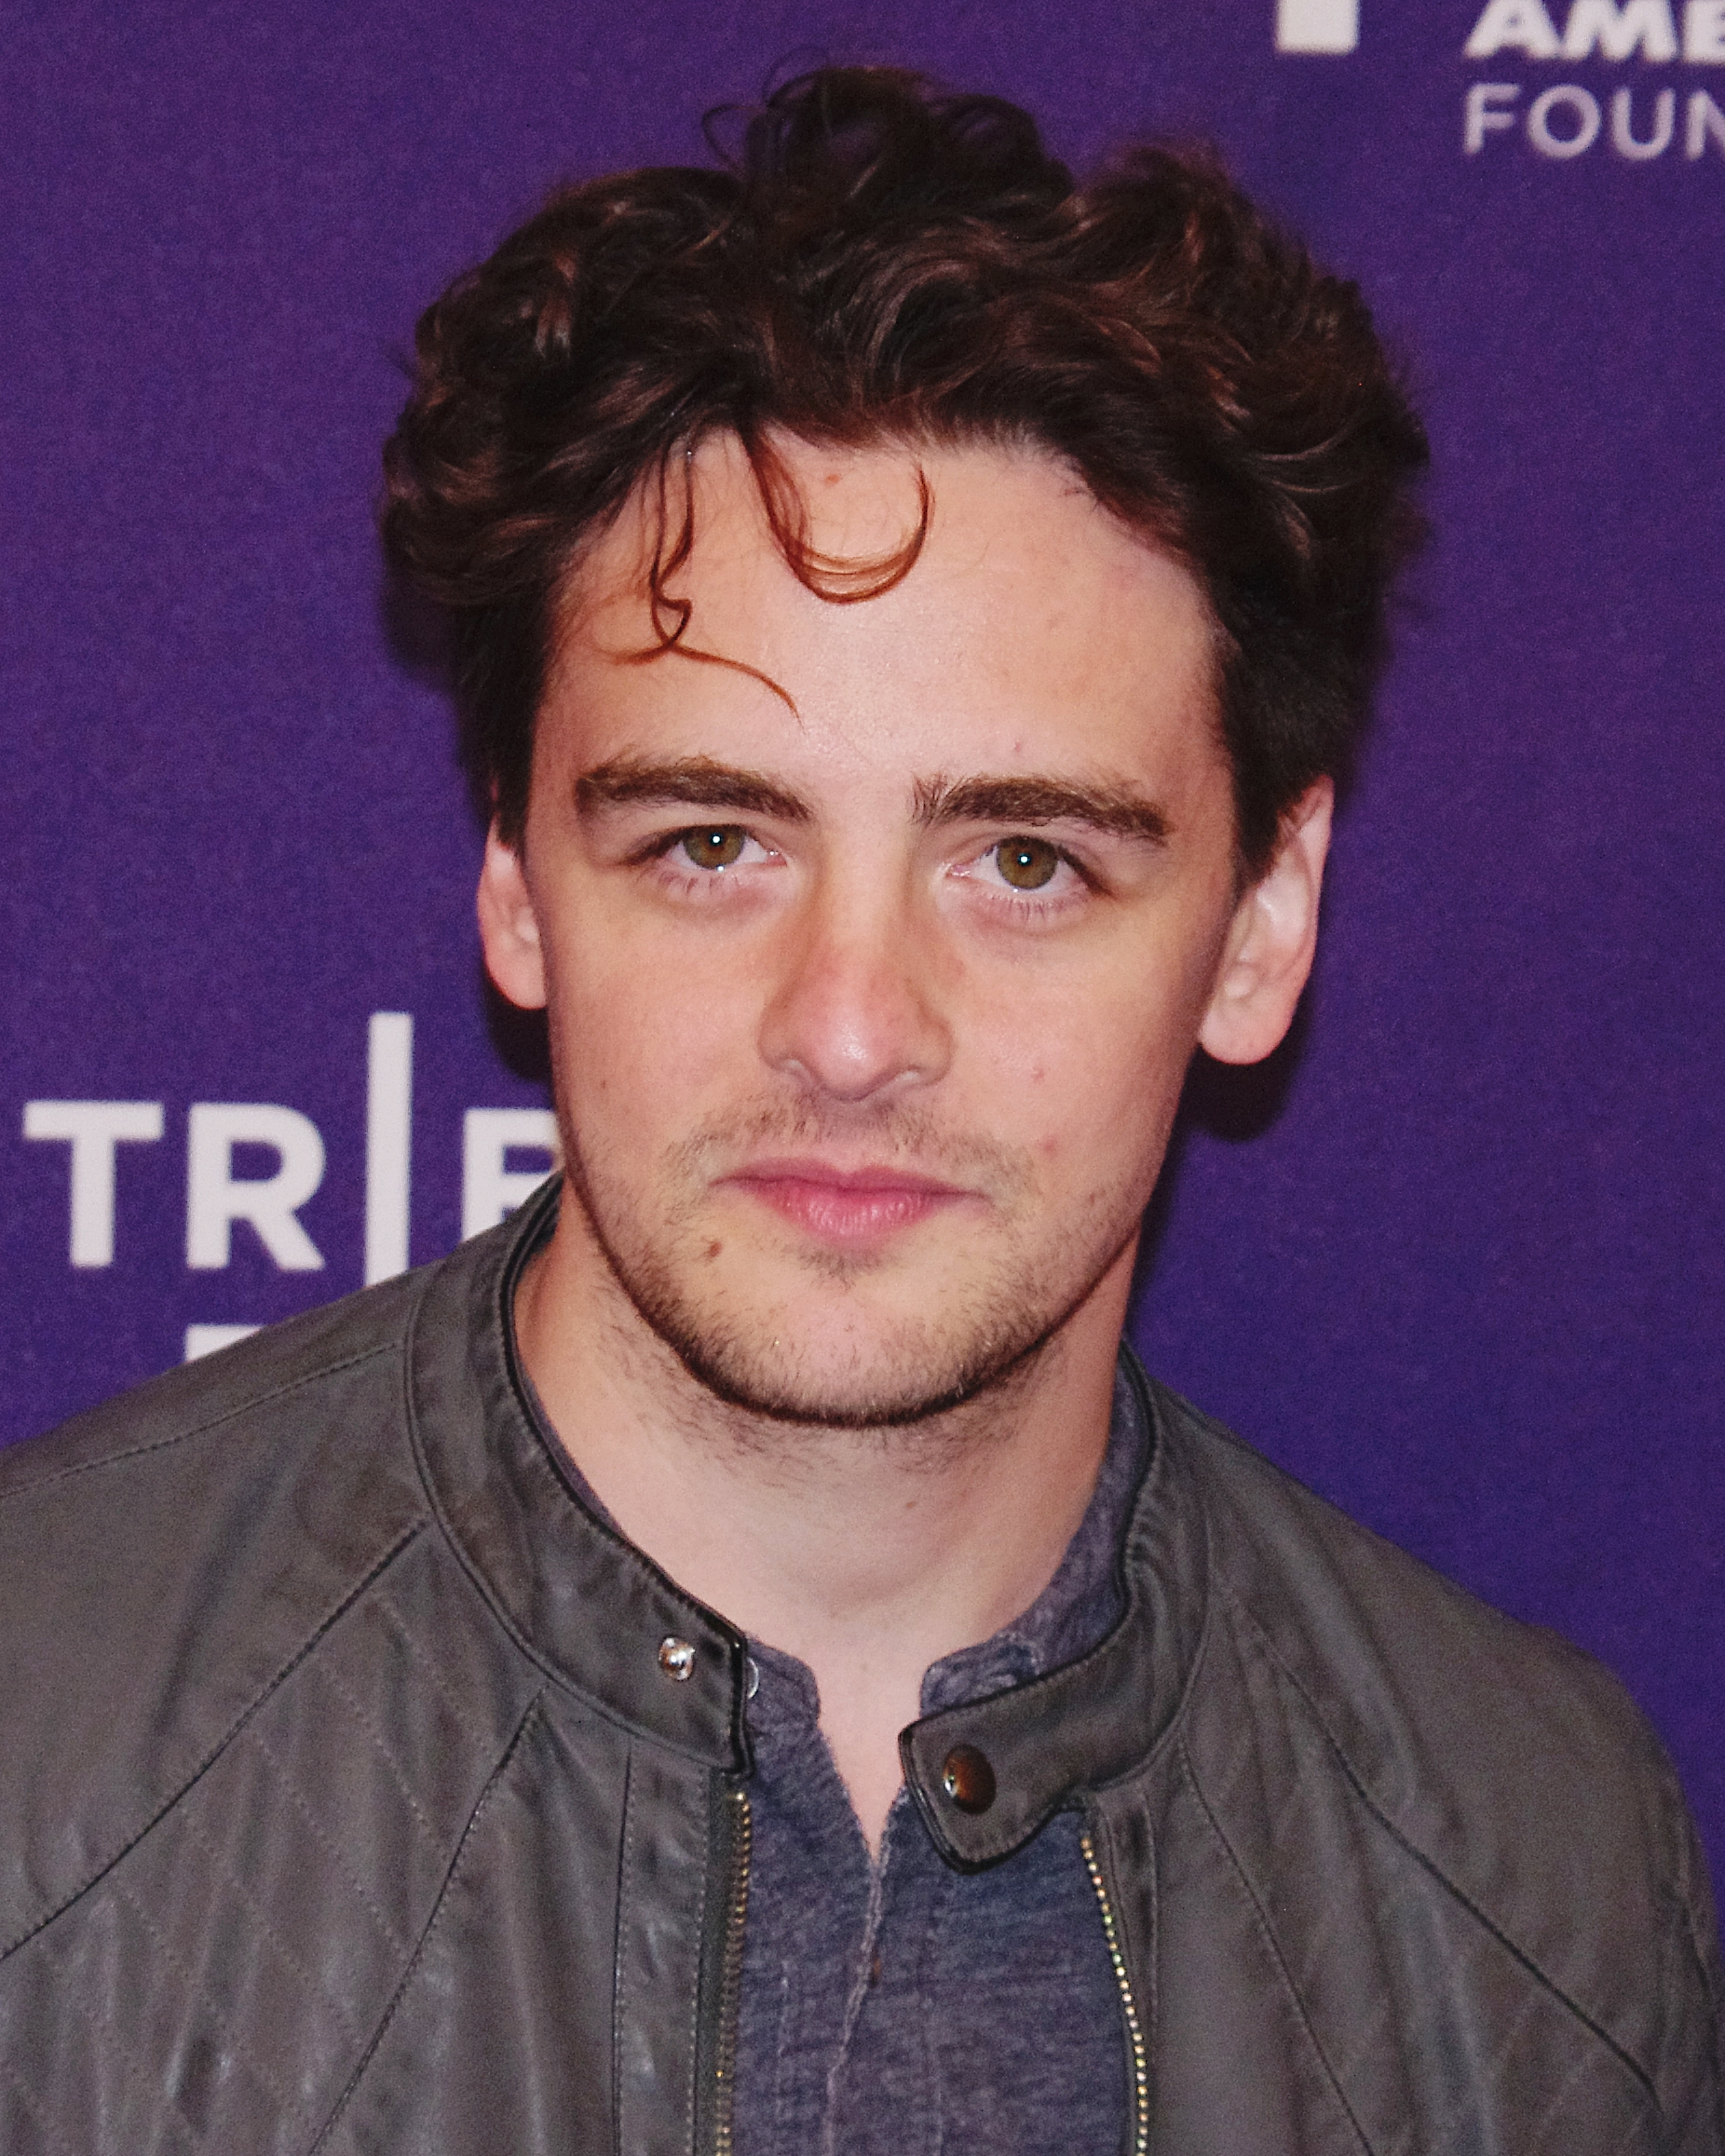 The 42-year old son of father (?) and mother(?) Vincent Piazza in 2018 photo. Vincent Piazza earned a  million dollar salary - leaving the net worth at 1 million in 2018